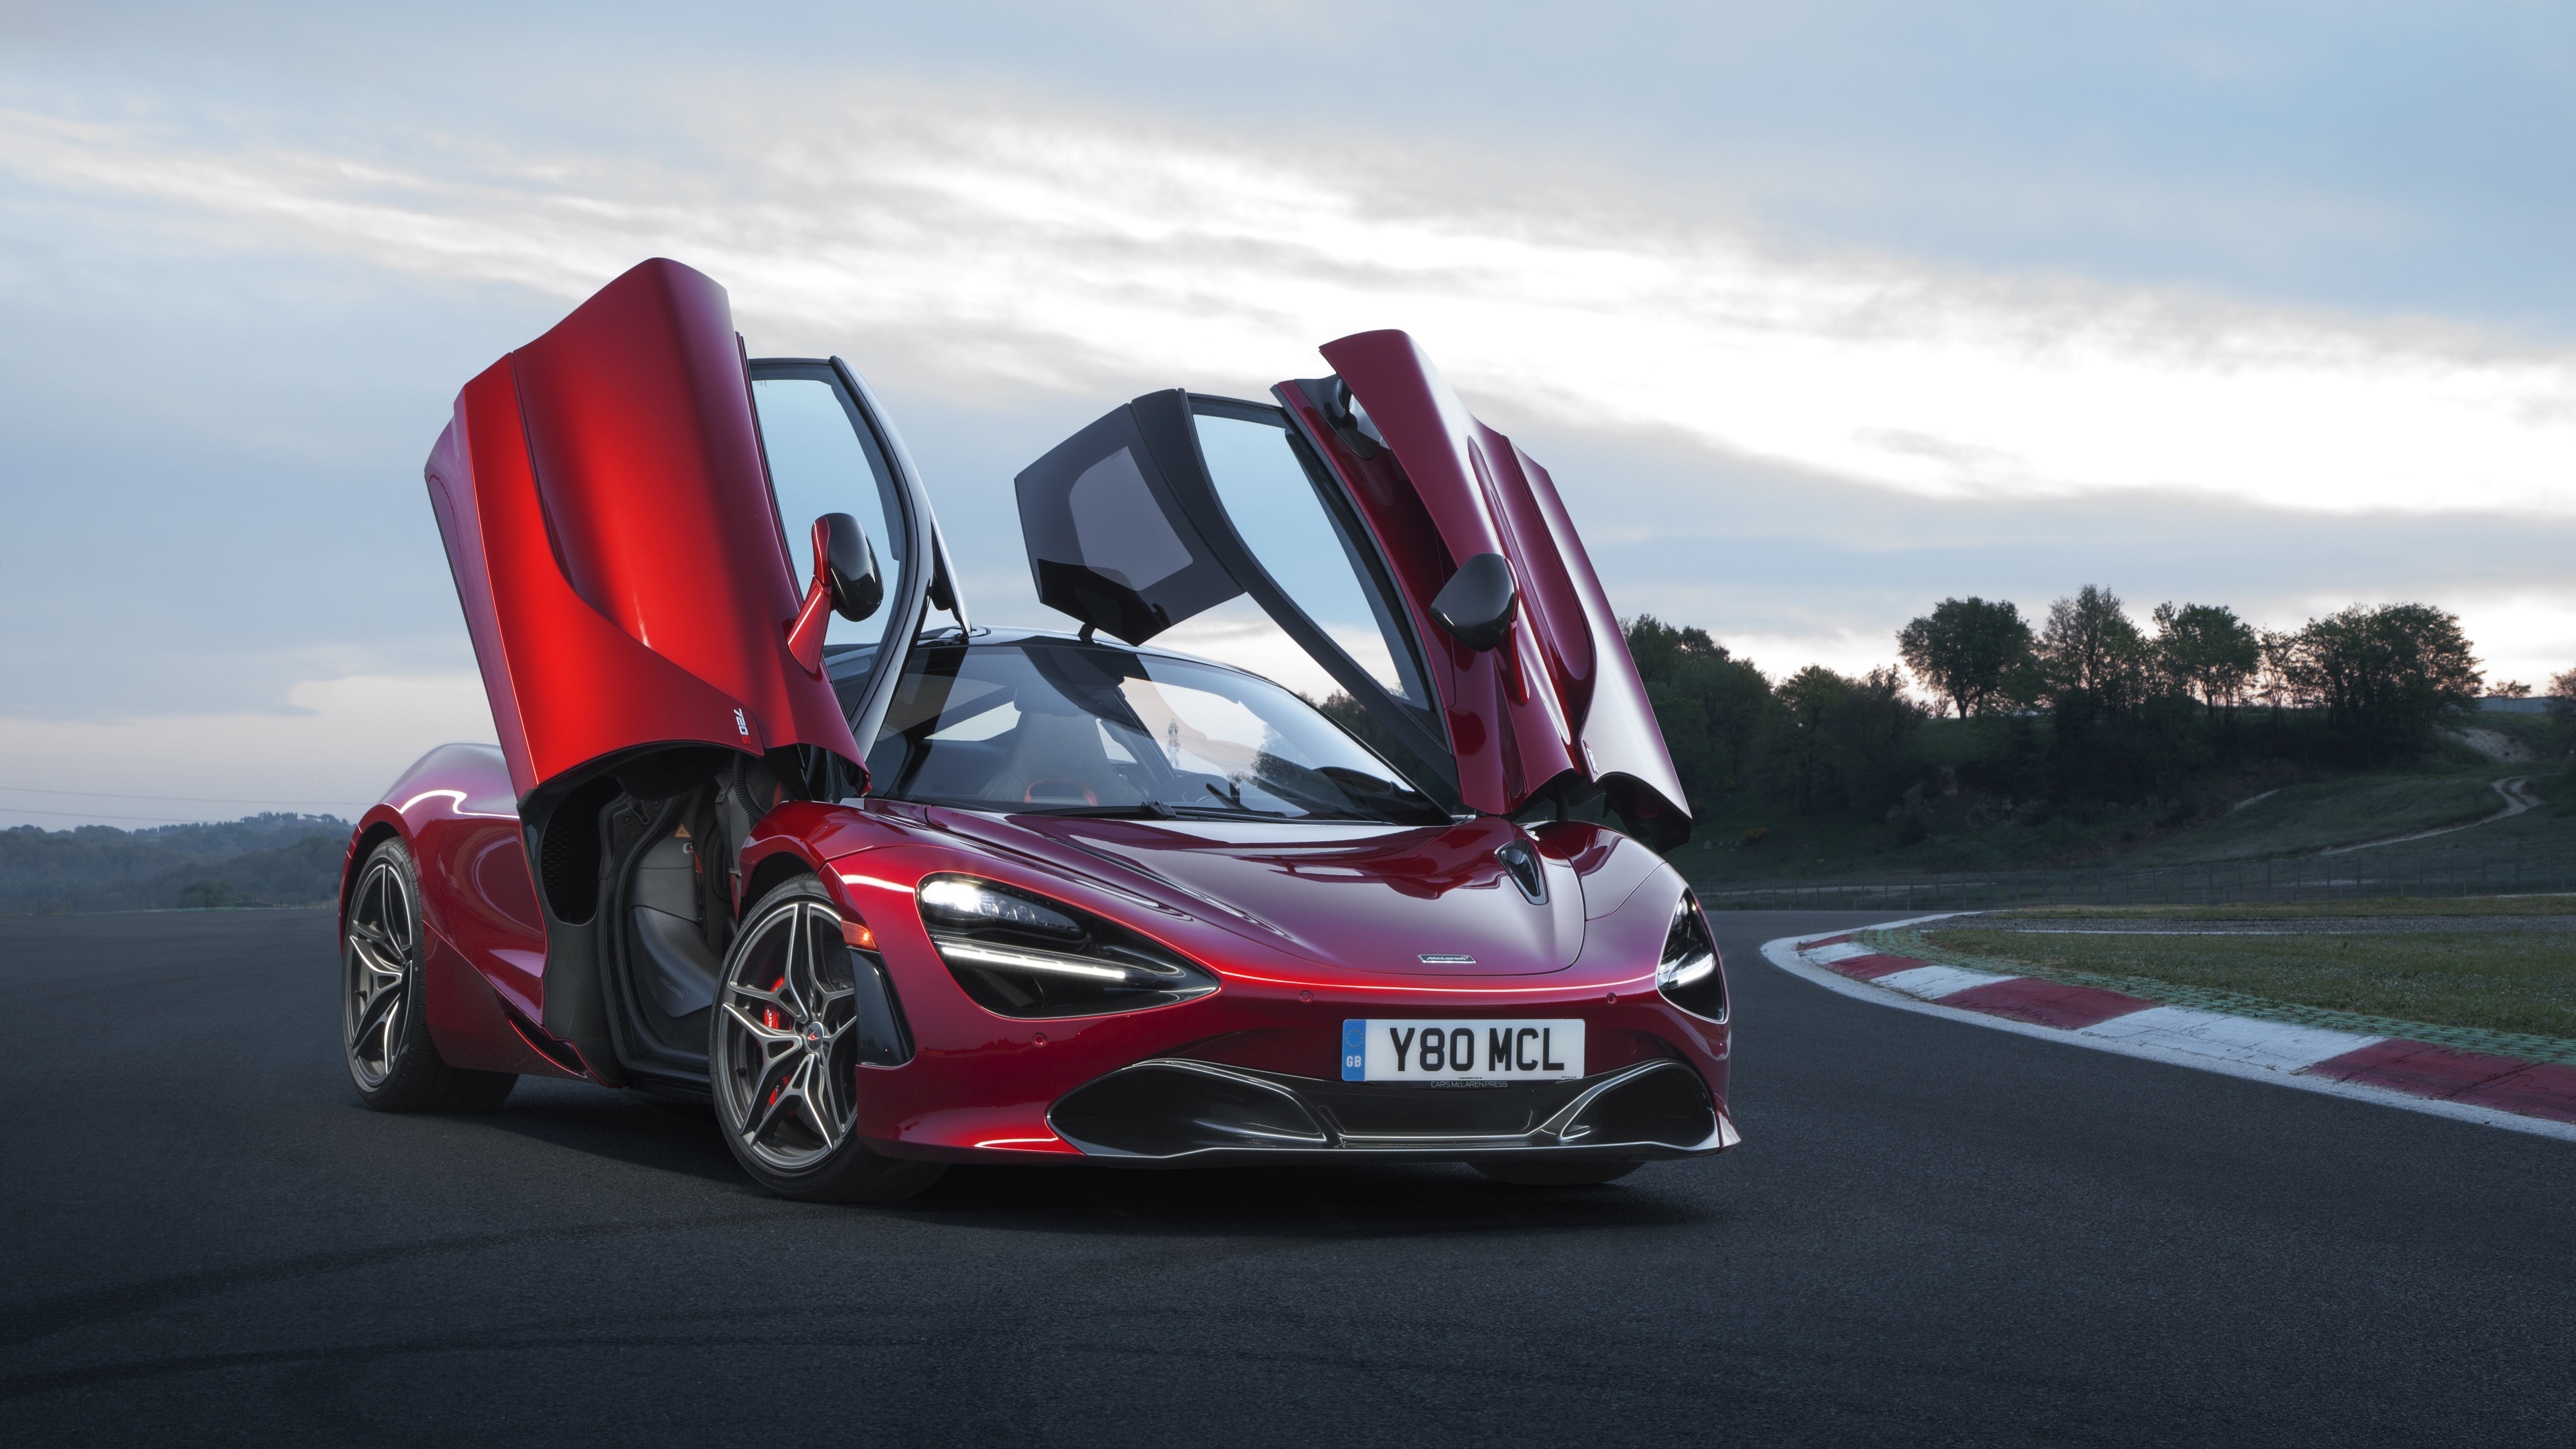 2018 Mclaren 720s Memphis Red Wallpaper Hd Car Wallpapers